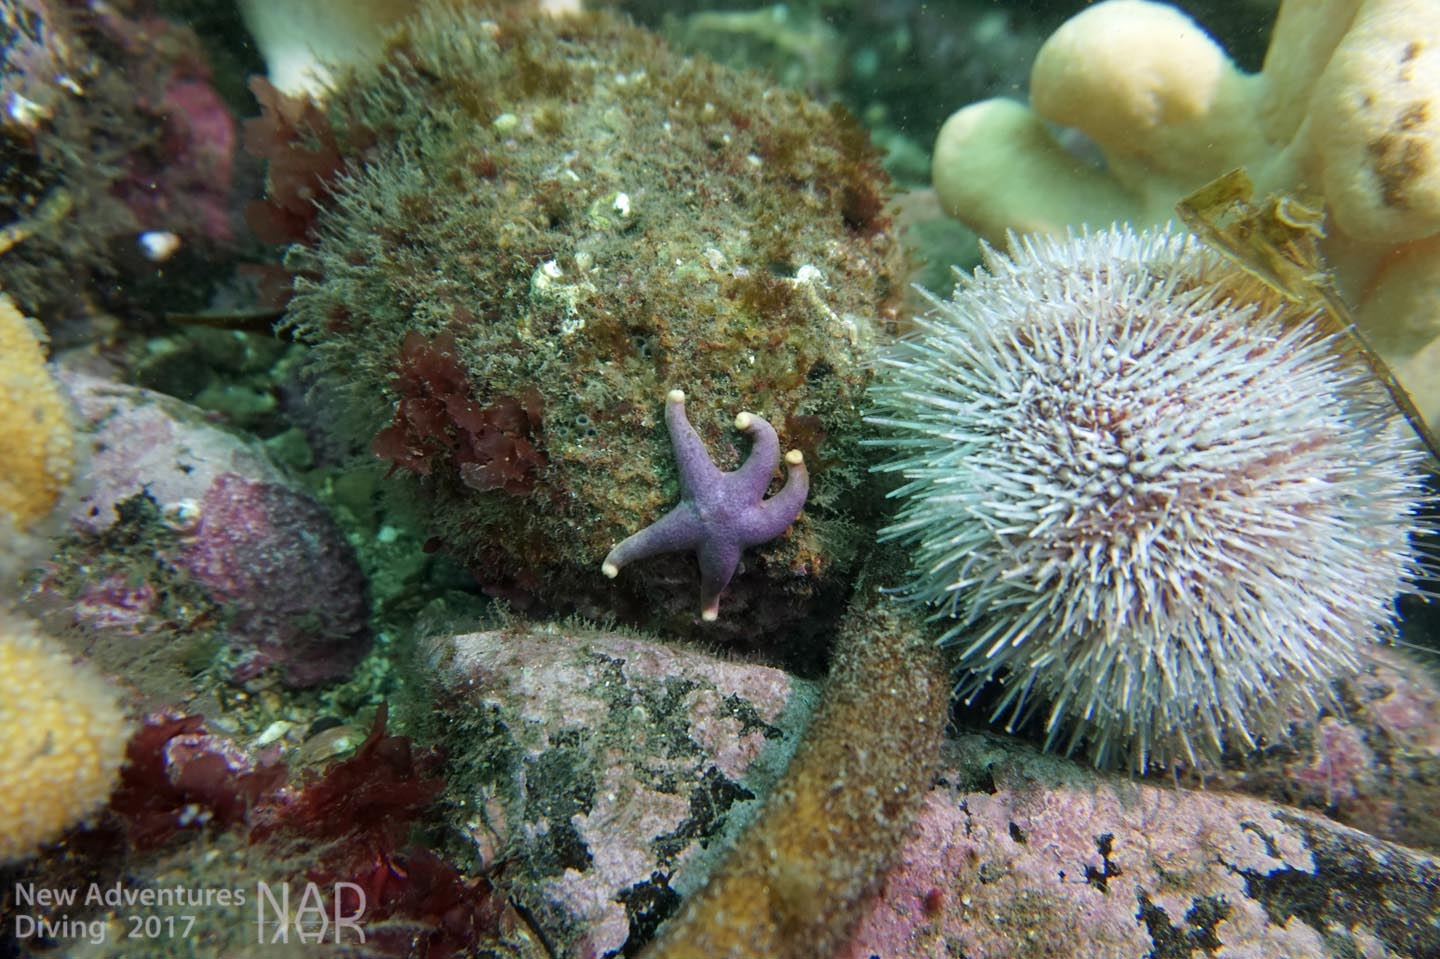 Common starfish and urchin